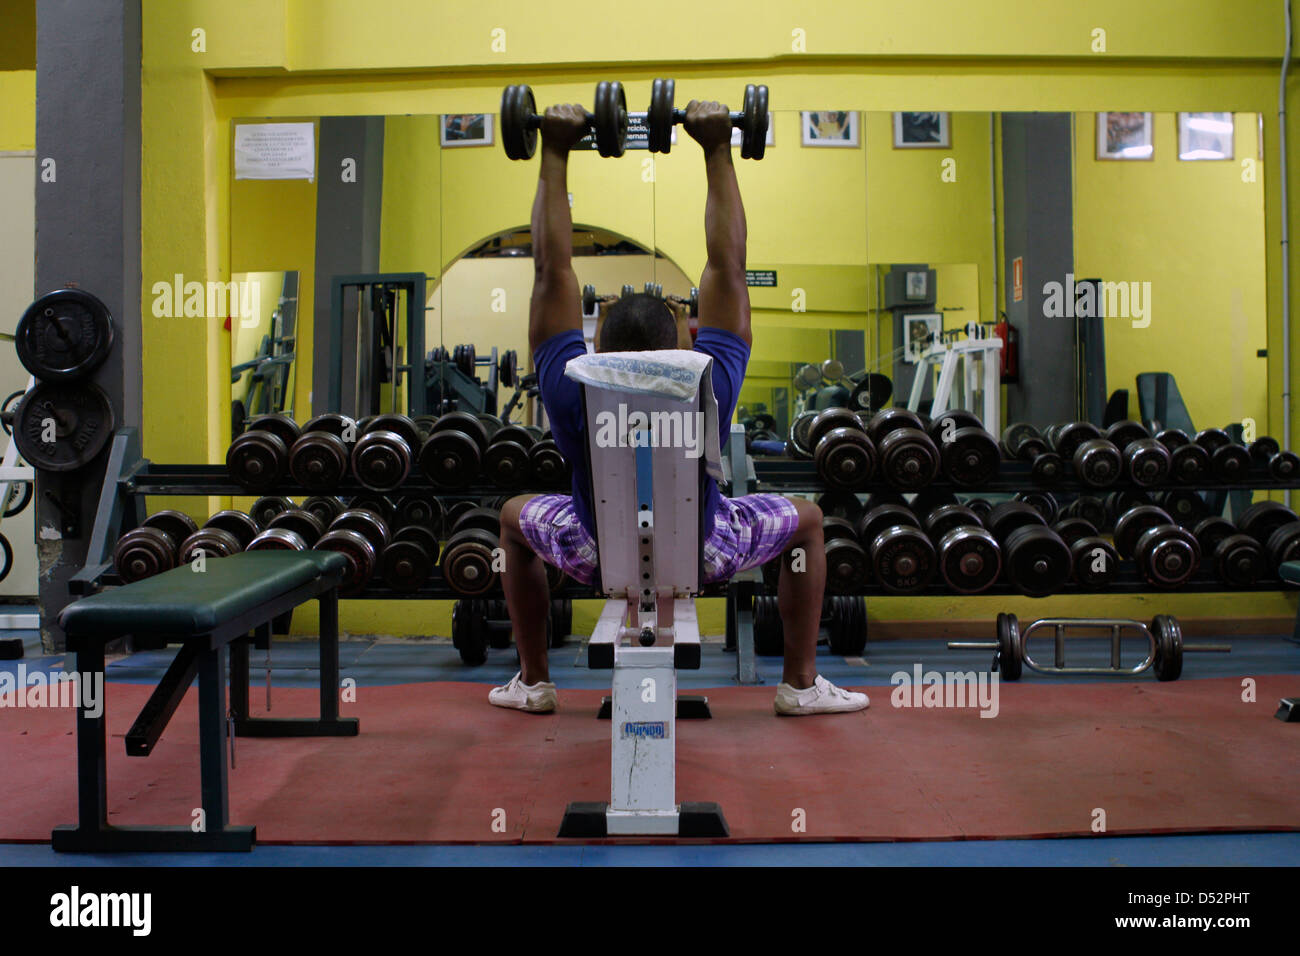 weightlifting in the gym - Stock Image